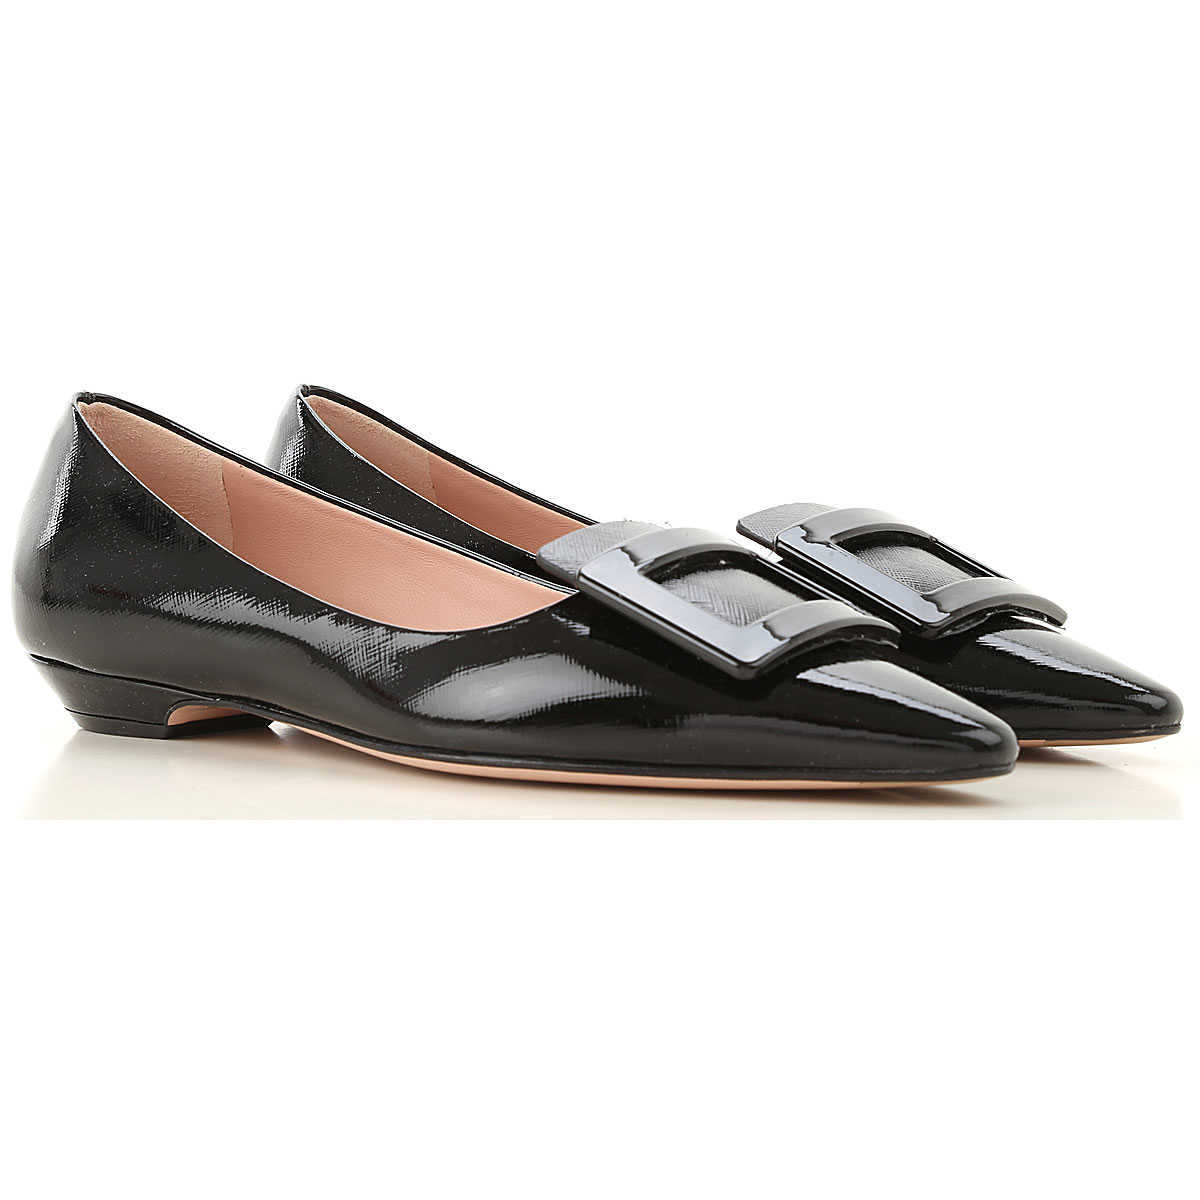 Roberto Festa Ballet Flats Ballerina Shoes for Women Black - GOOFASH